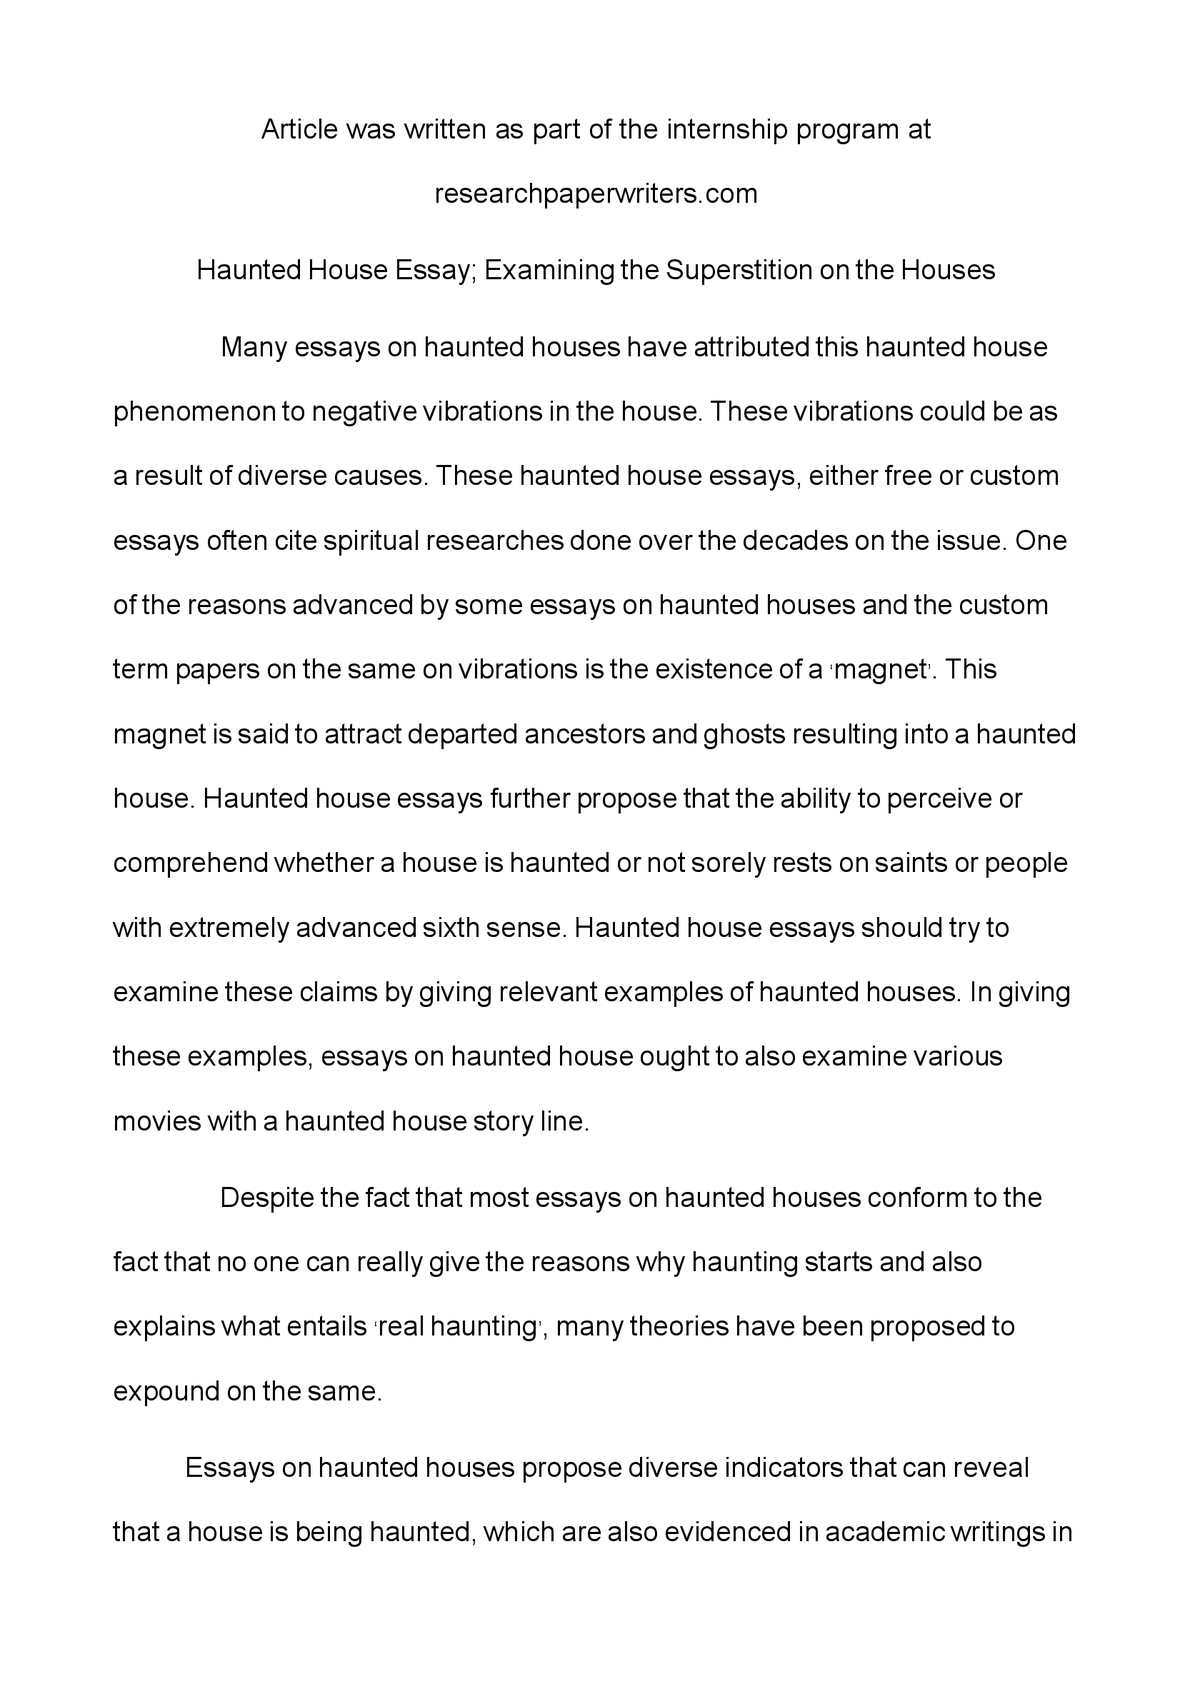 calam atilde copy o haunted house essay examining the superstition on the calamatildecopyo haunted house essay examining the superstition on the houses